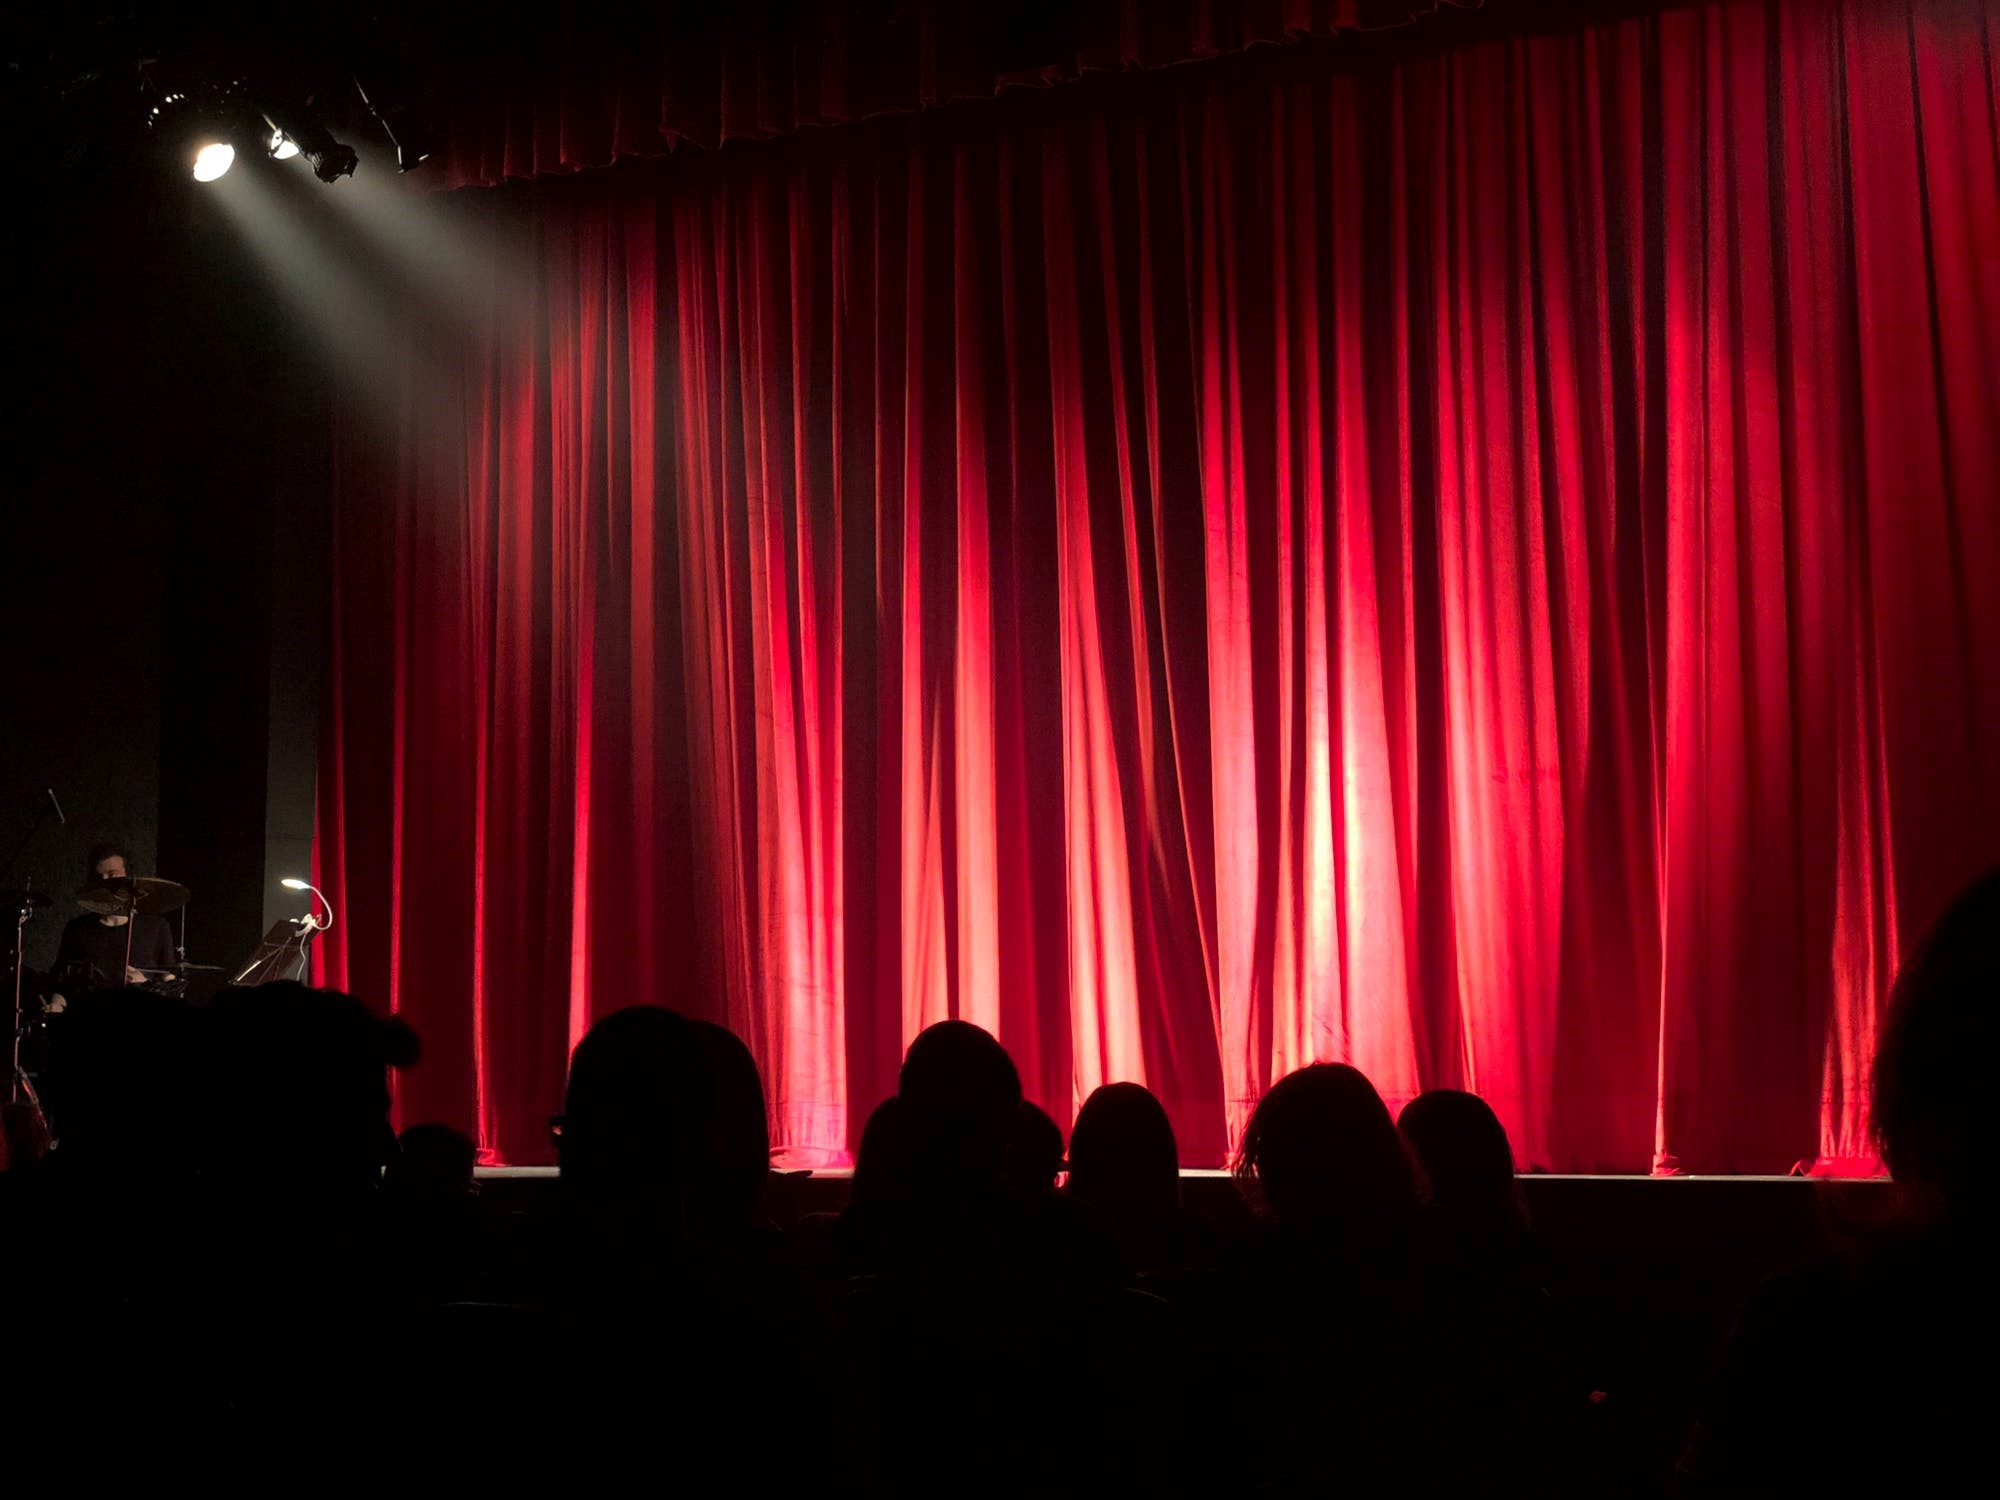 Red curtains in a theatre - Practice your elevator pitch - important skill for global development professionals